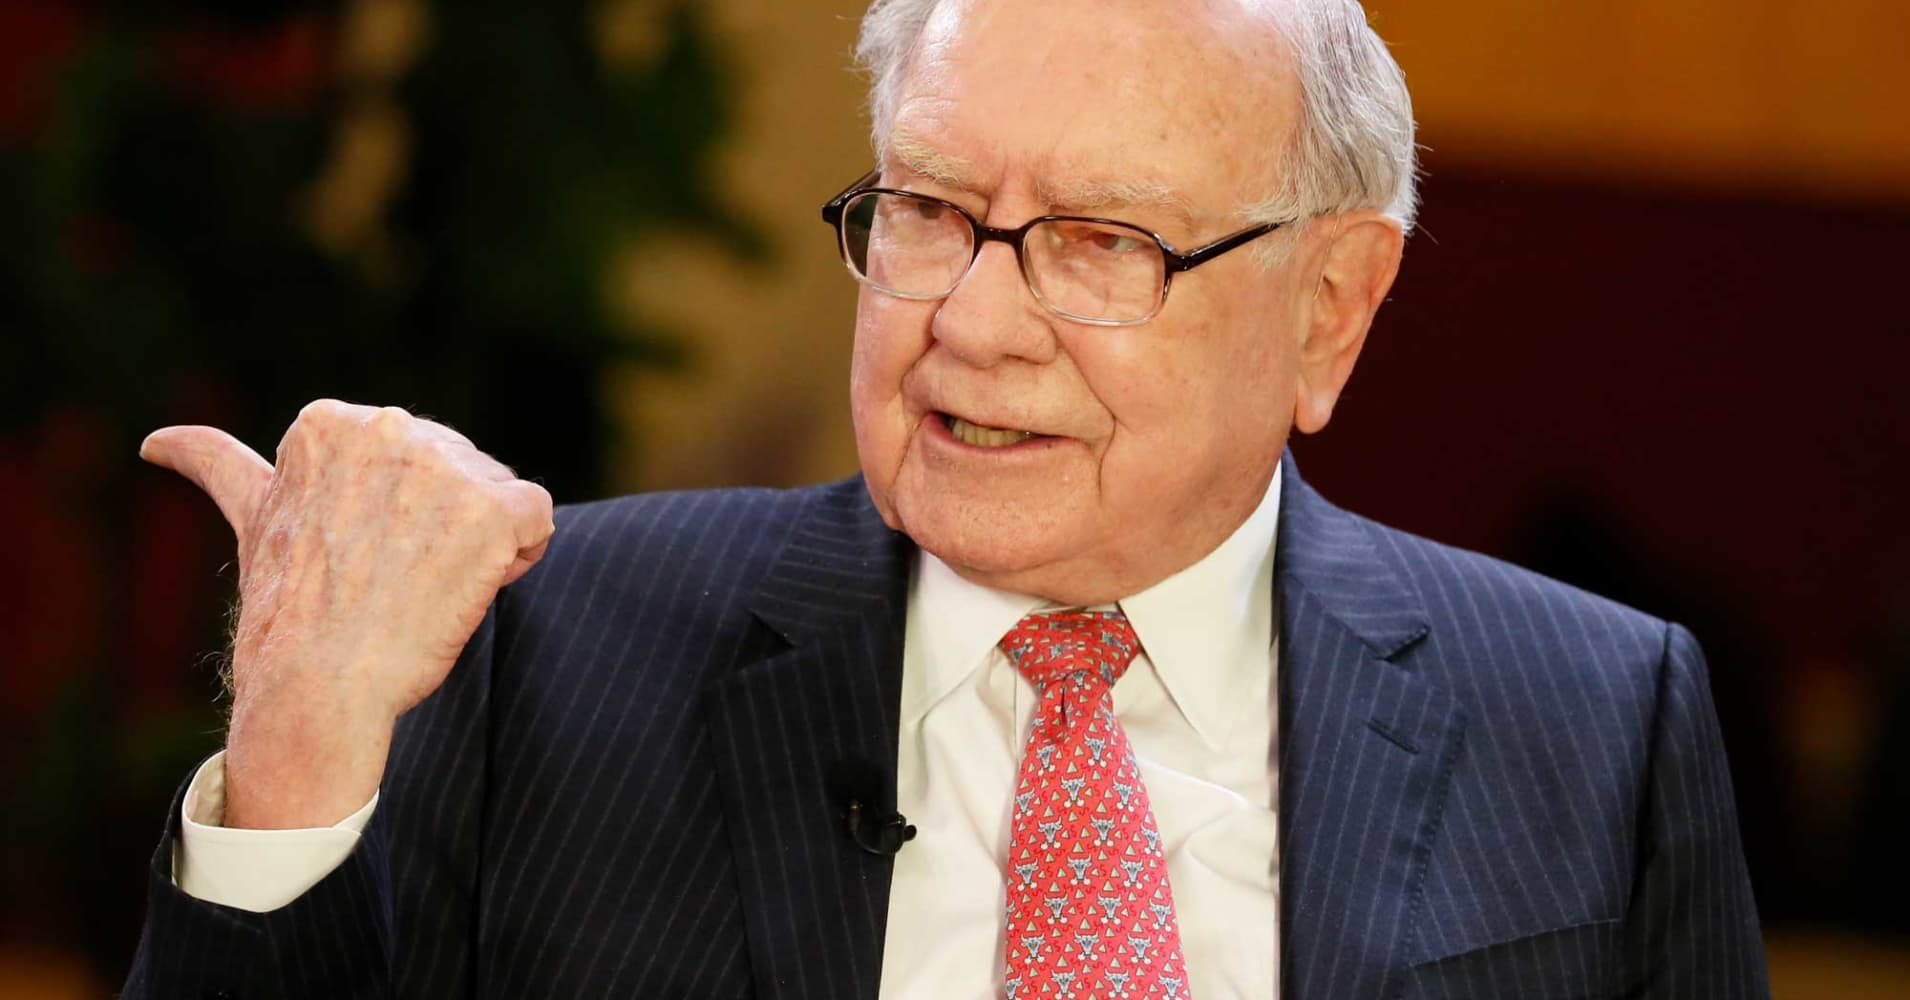 Buffett says Trump hasn't had much effect on the economy yet